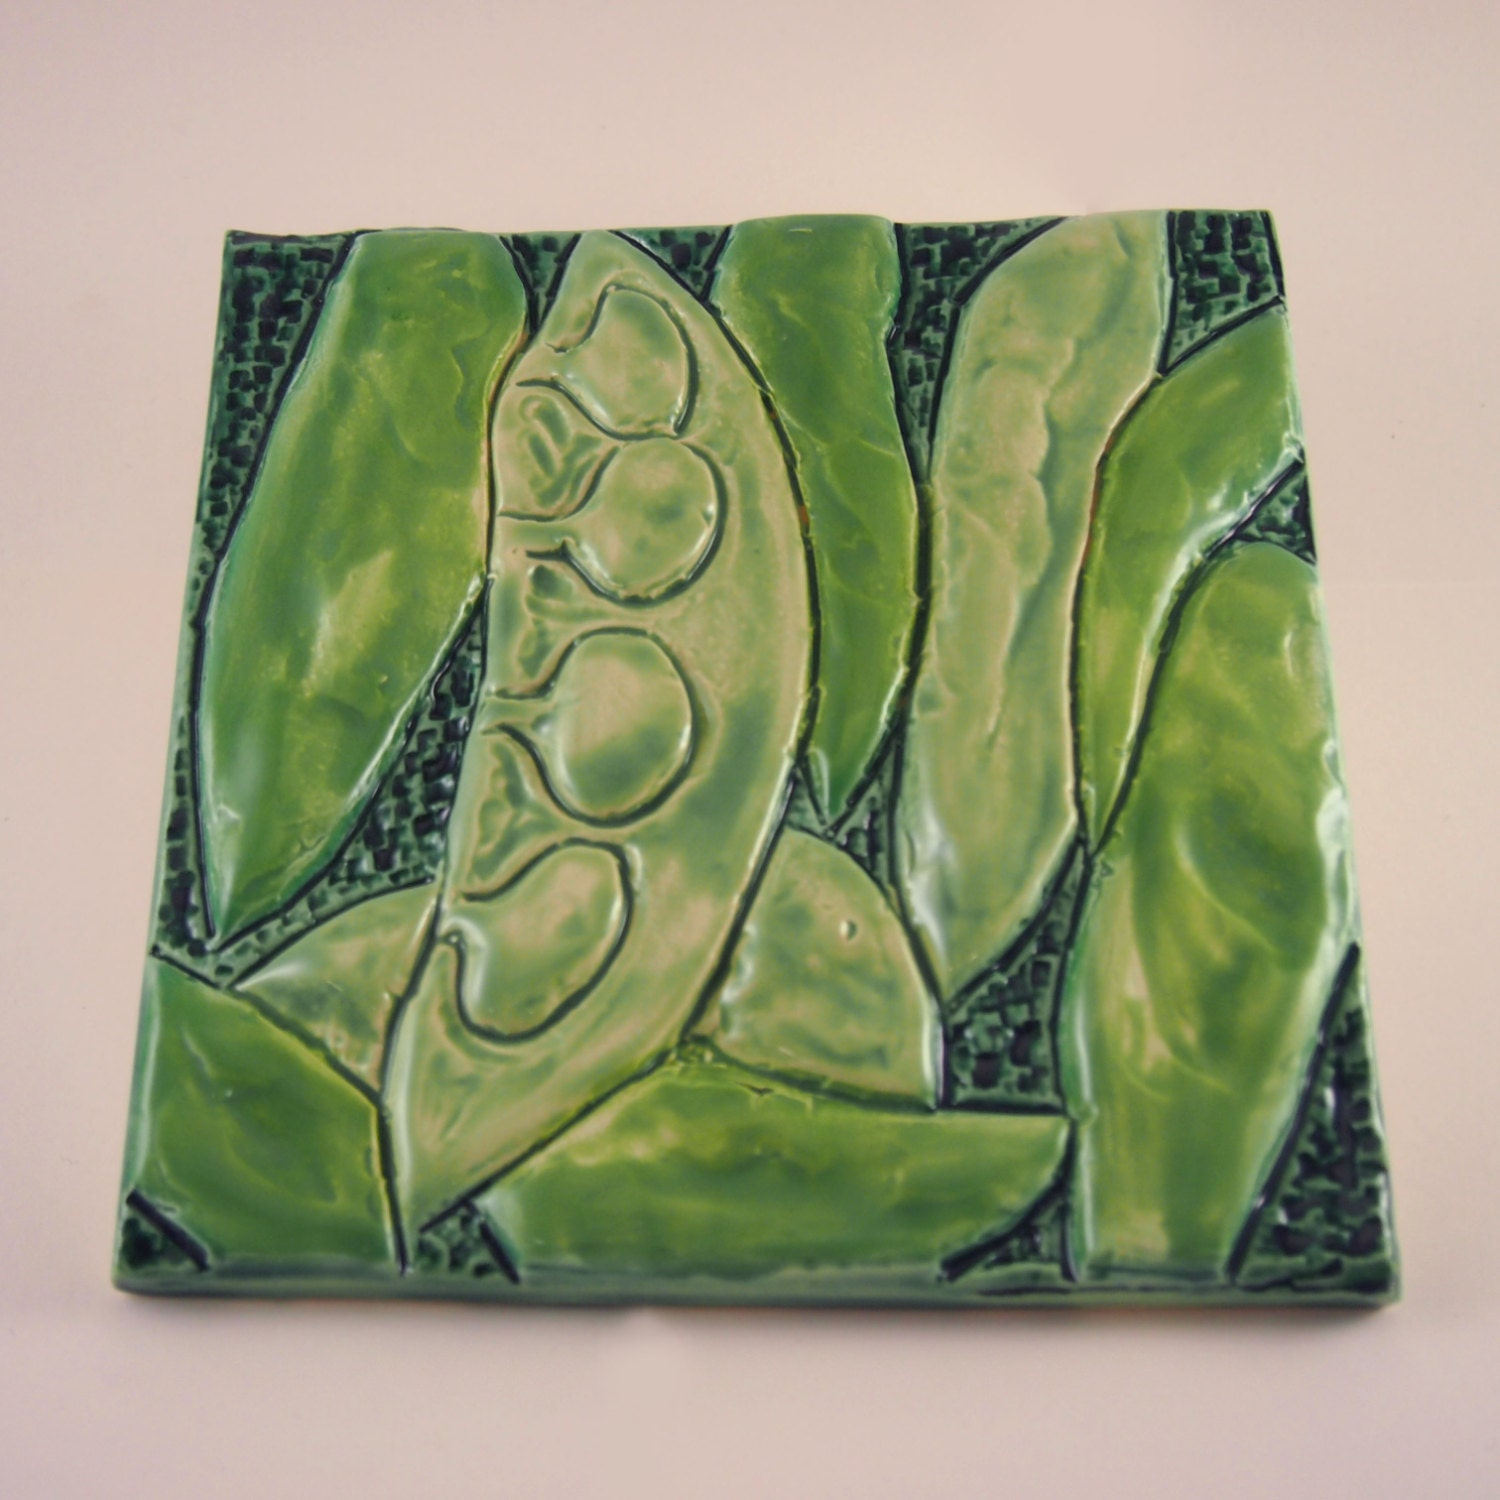 Lima beans low relief ceramic art tile indoor wall hanging zoom dailygadgetfo Choice Image